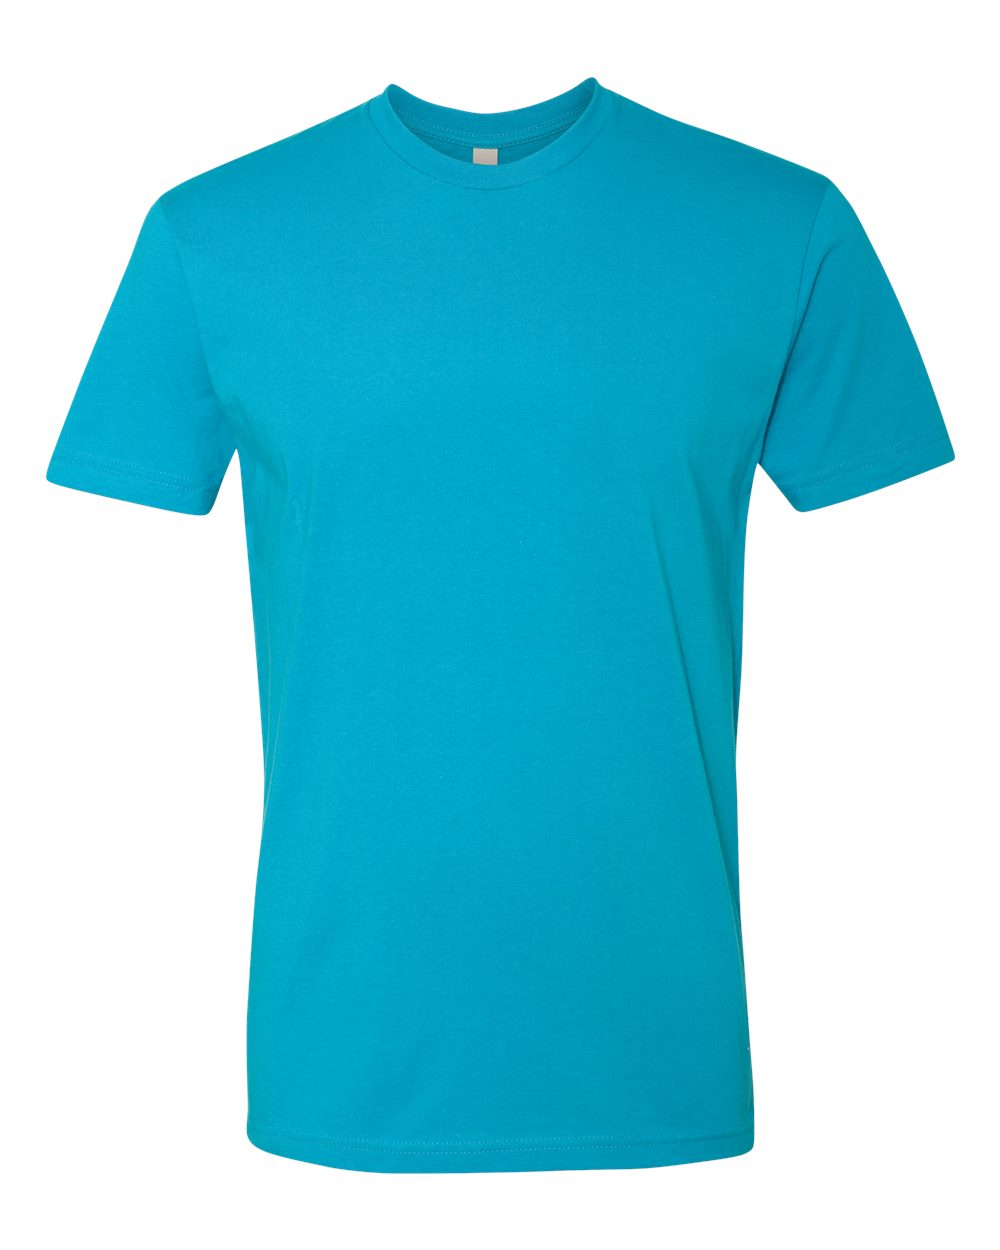 Next_Level_3600_Turquoise_Front_High.jpg